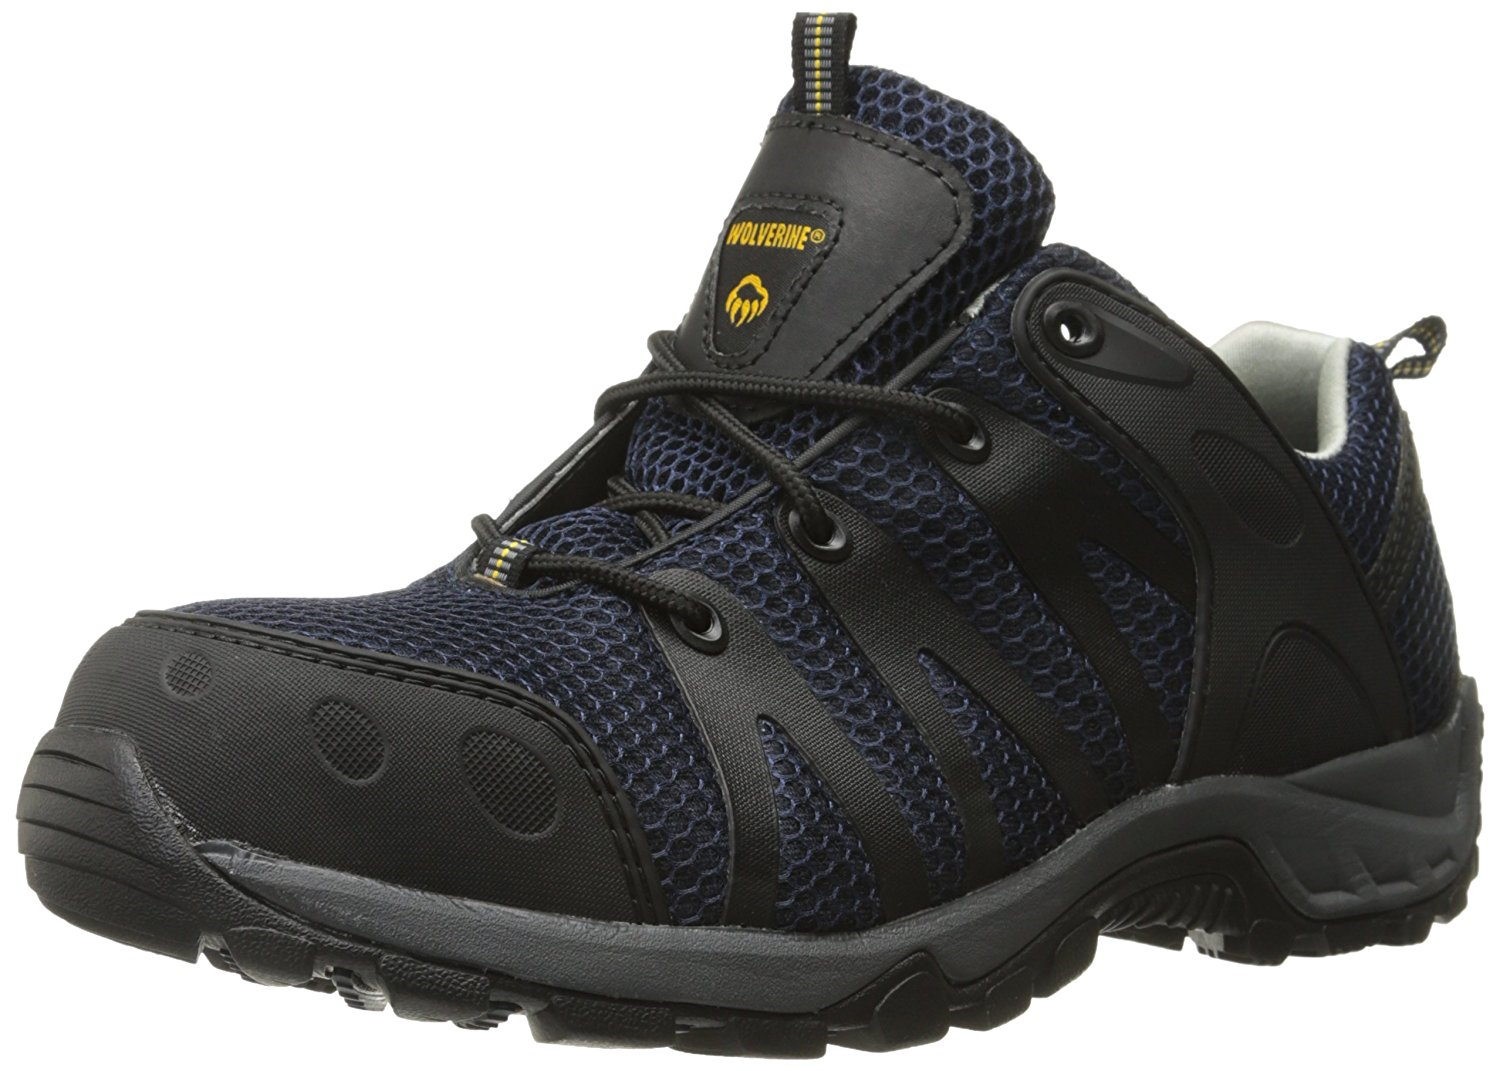 Wolverine Men's Amherst Comp Toe Trail Runner Work Boot